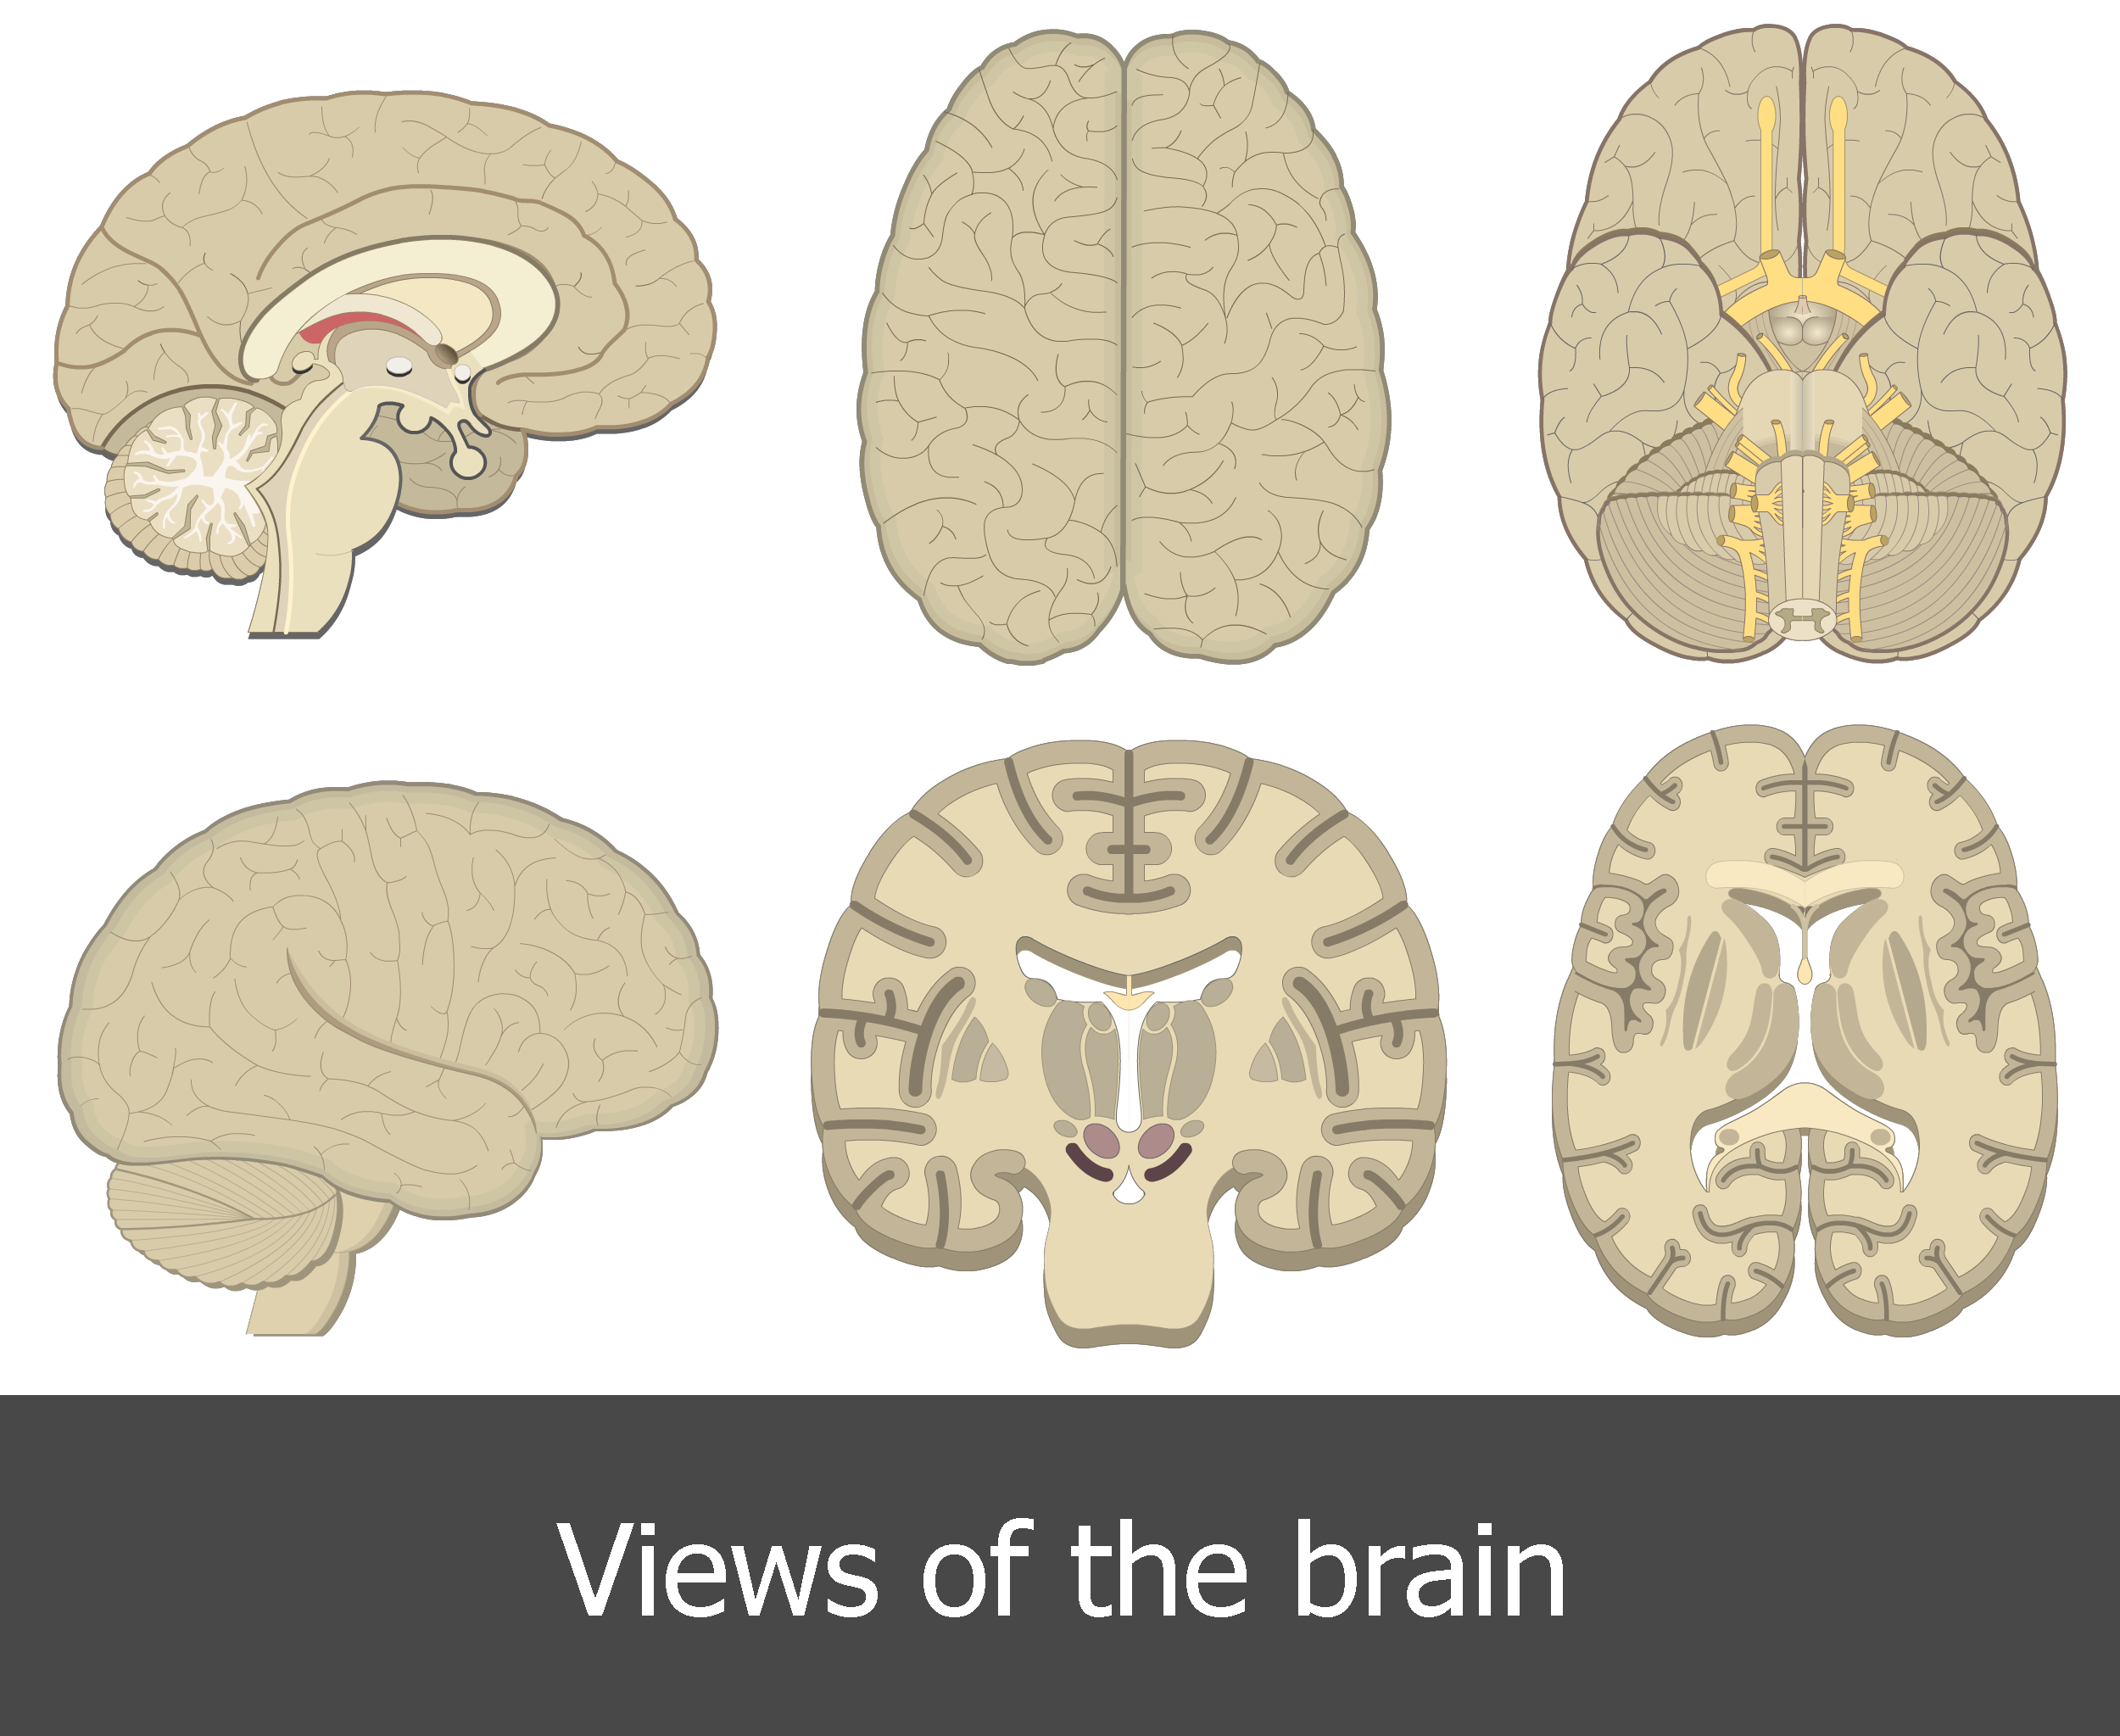 An image showing all brain perspectives/views (lateral - medial - superior - inferior - coronal - horizontal)